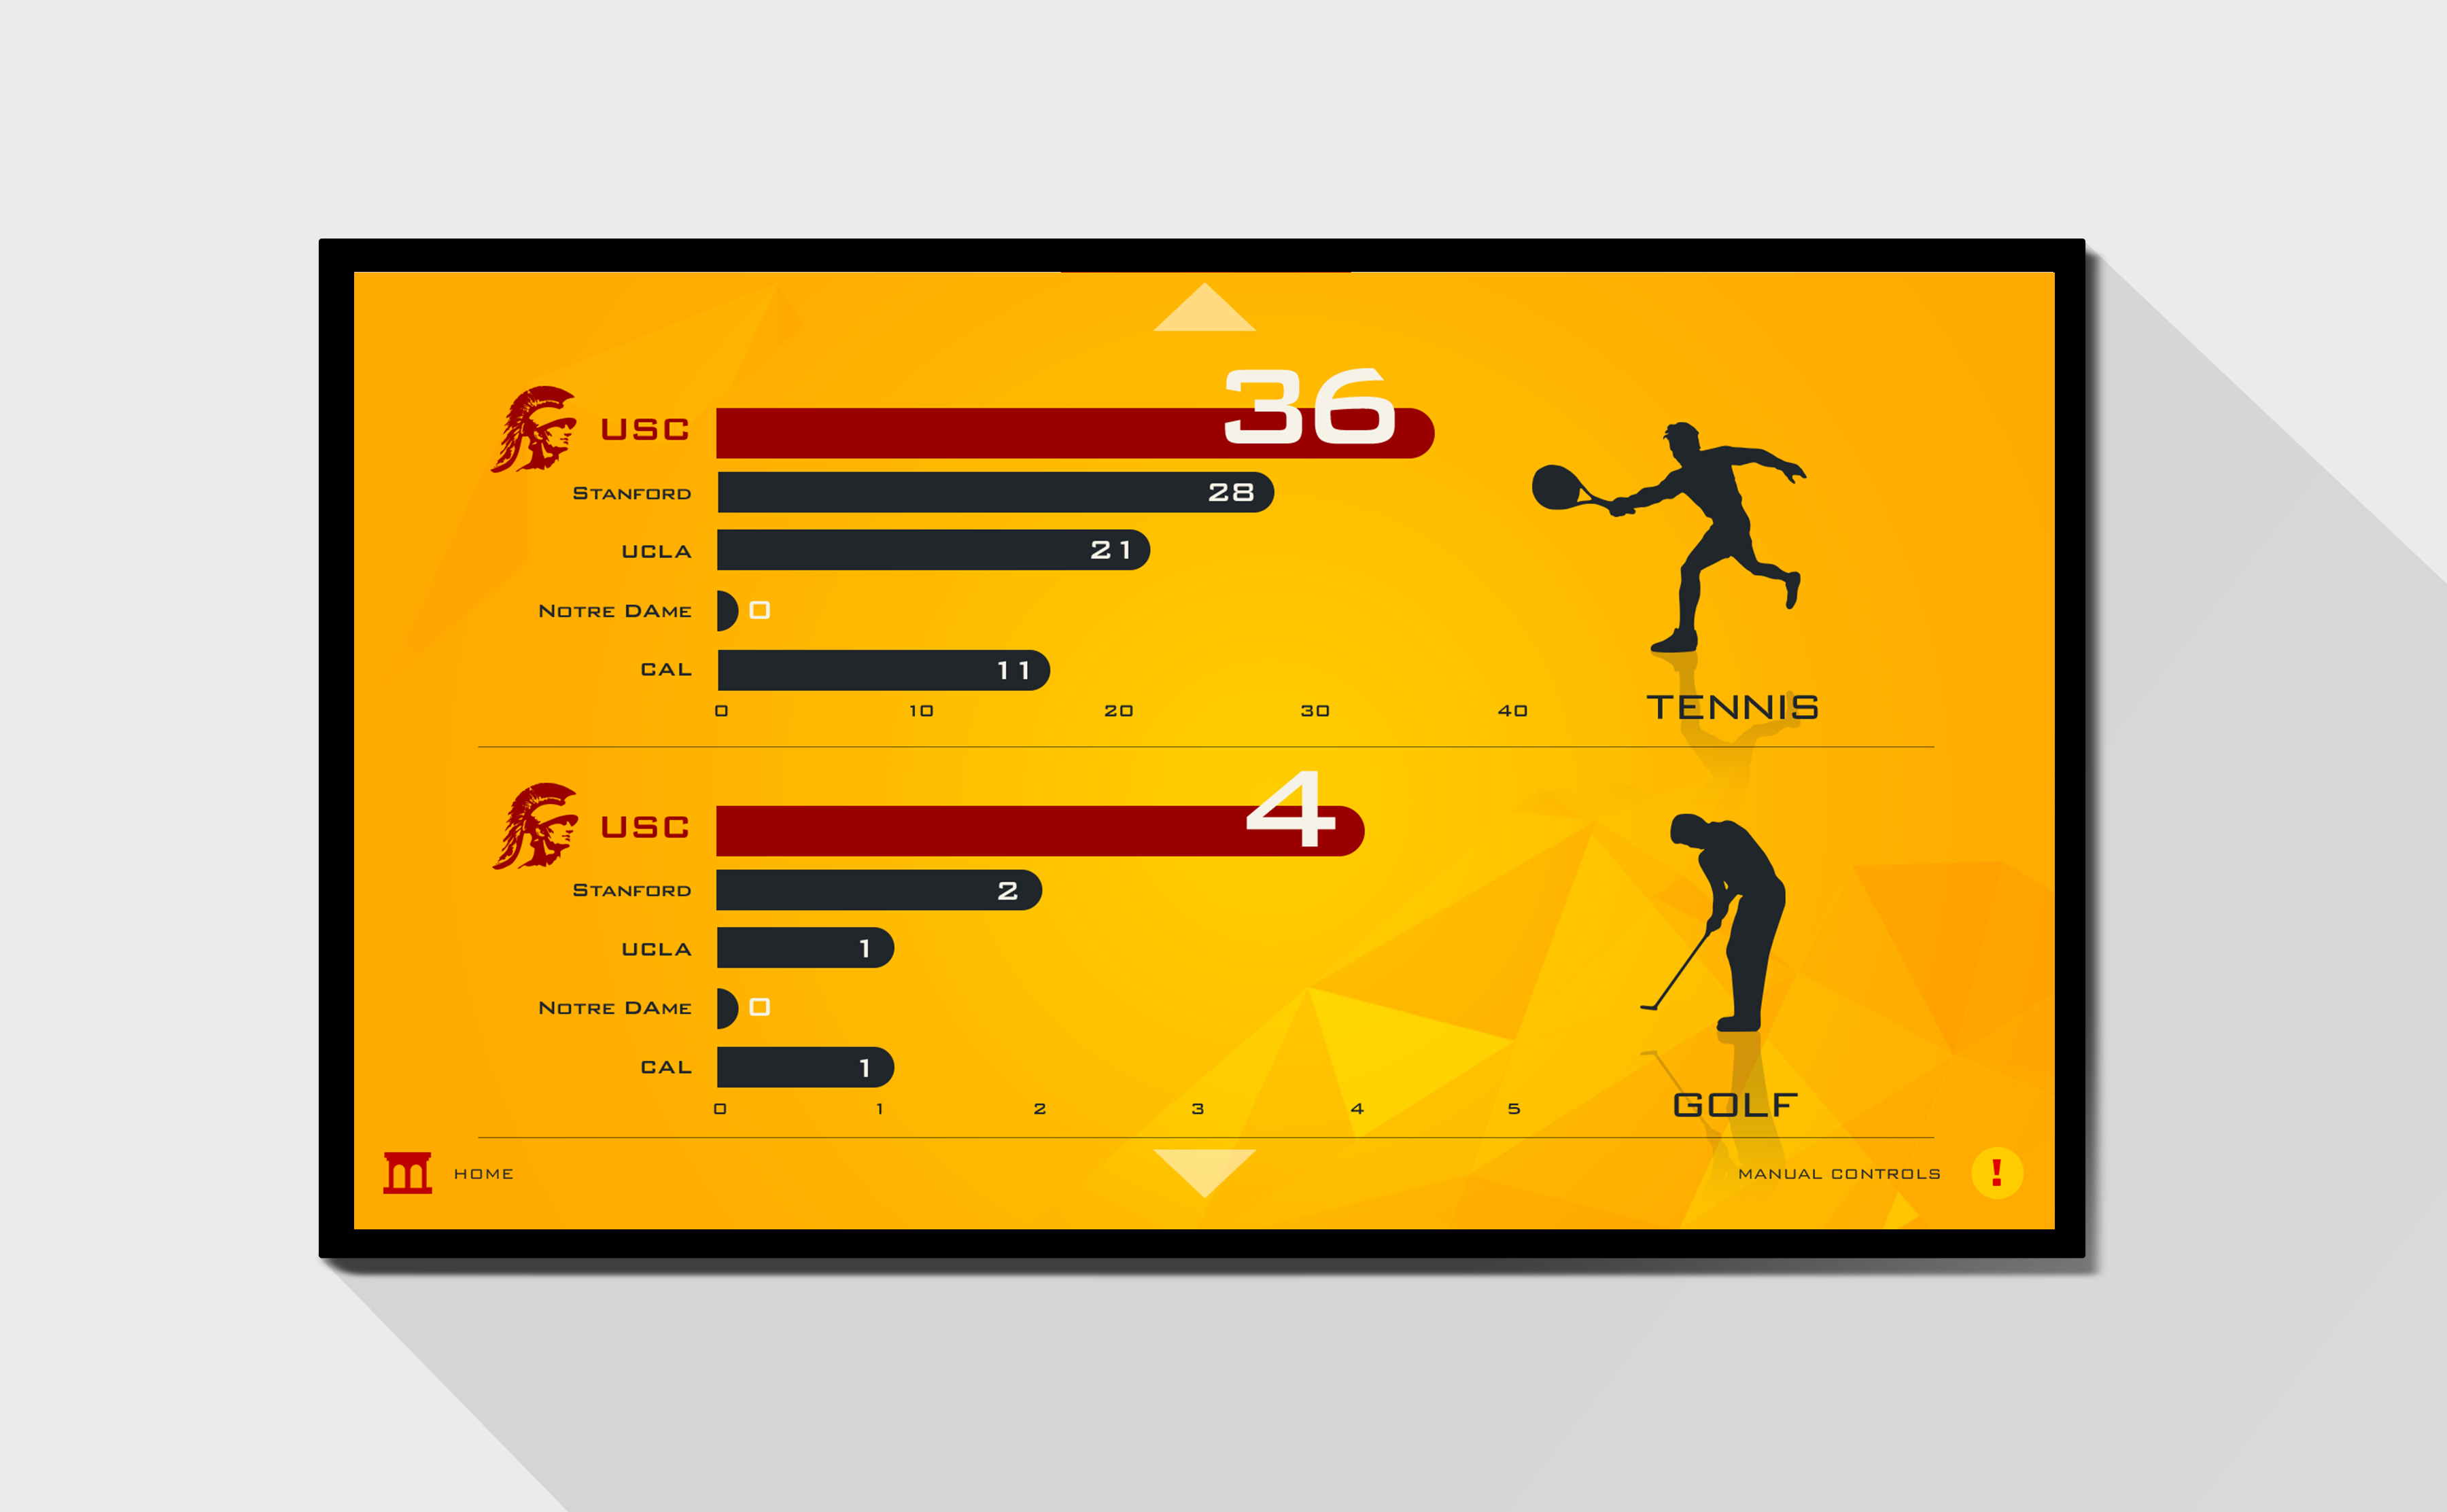 USC Interactive Screens tennis and golf